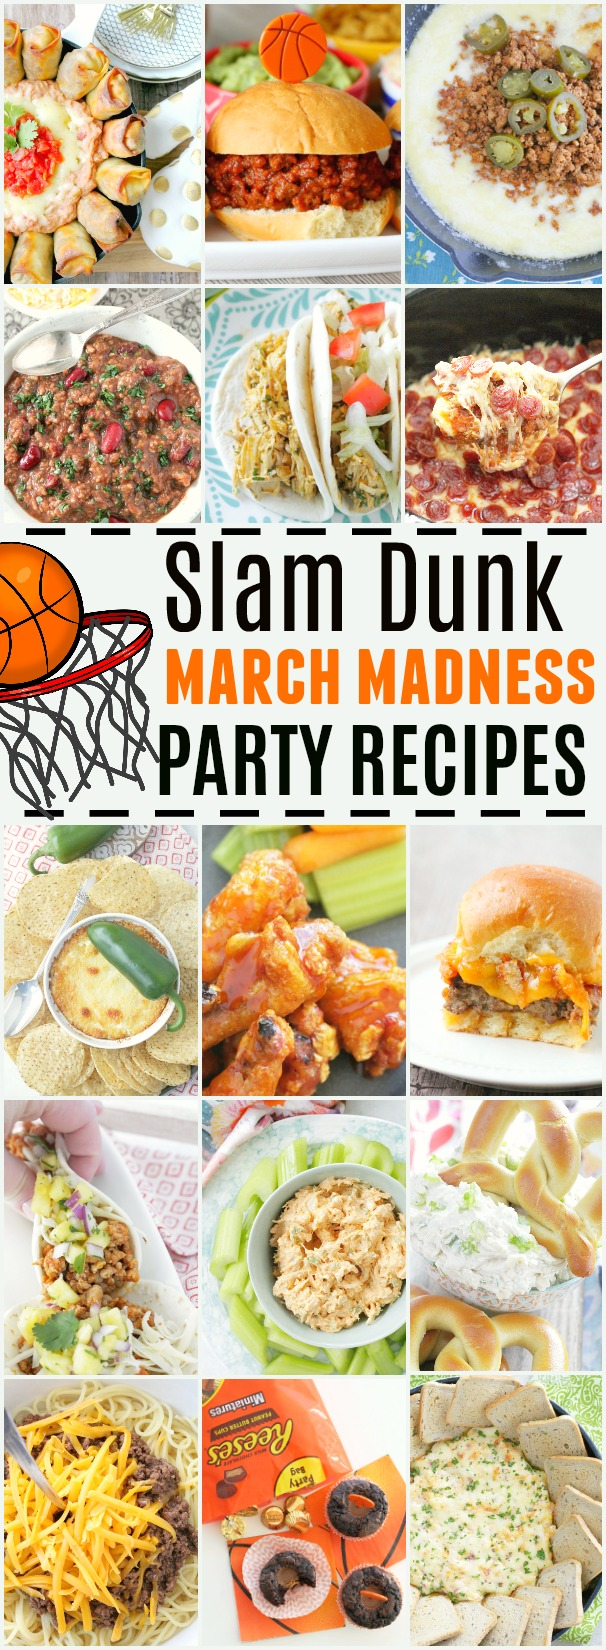 Slam Dunk March Madness Party Recipes